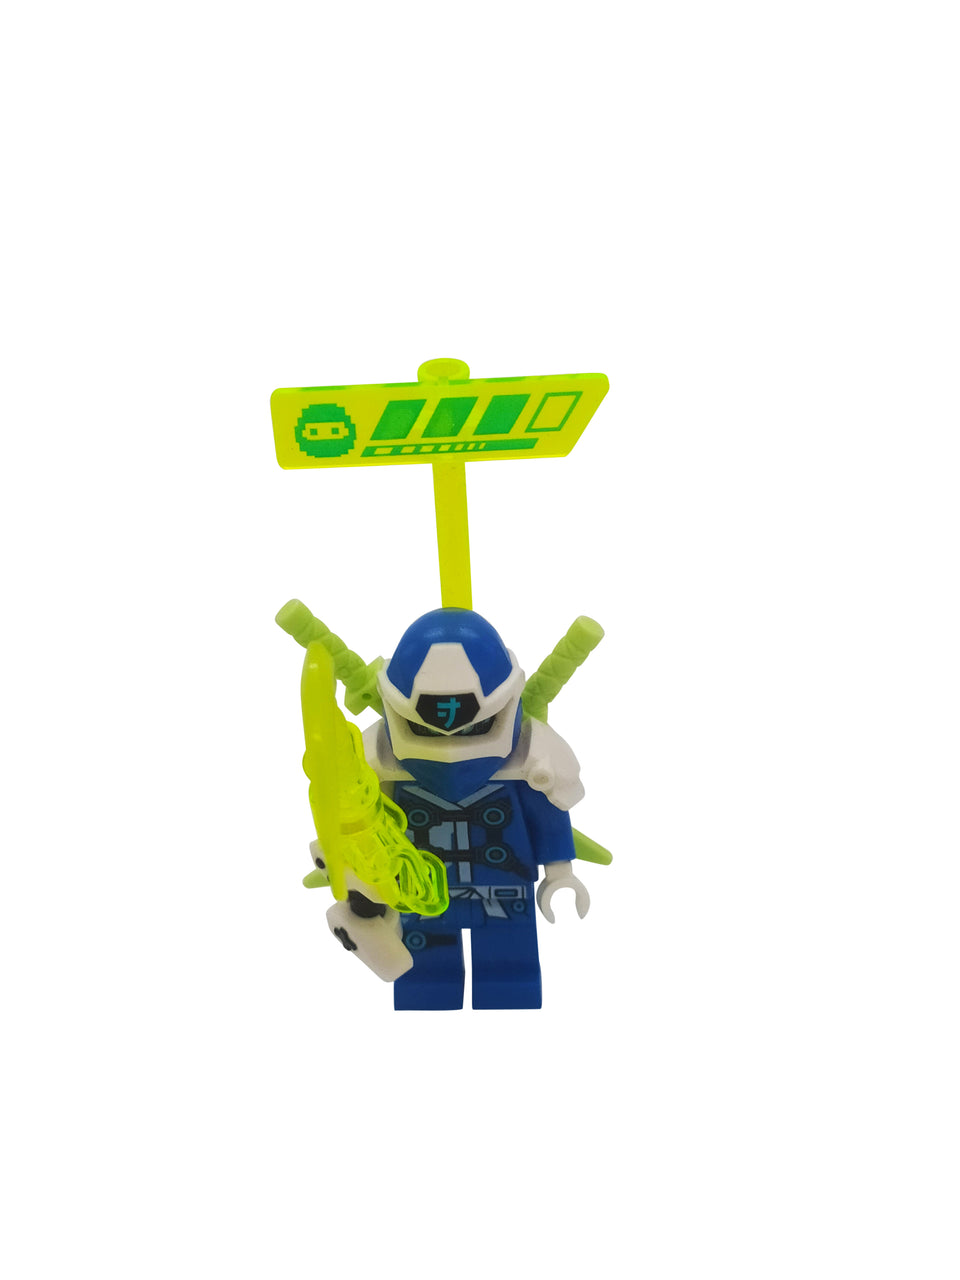 A special figure with 2 swords, a green sign and a glowing chain - lego